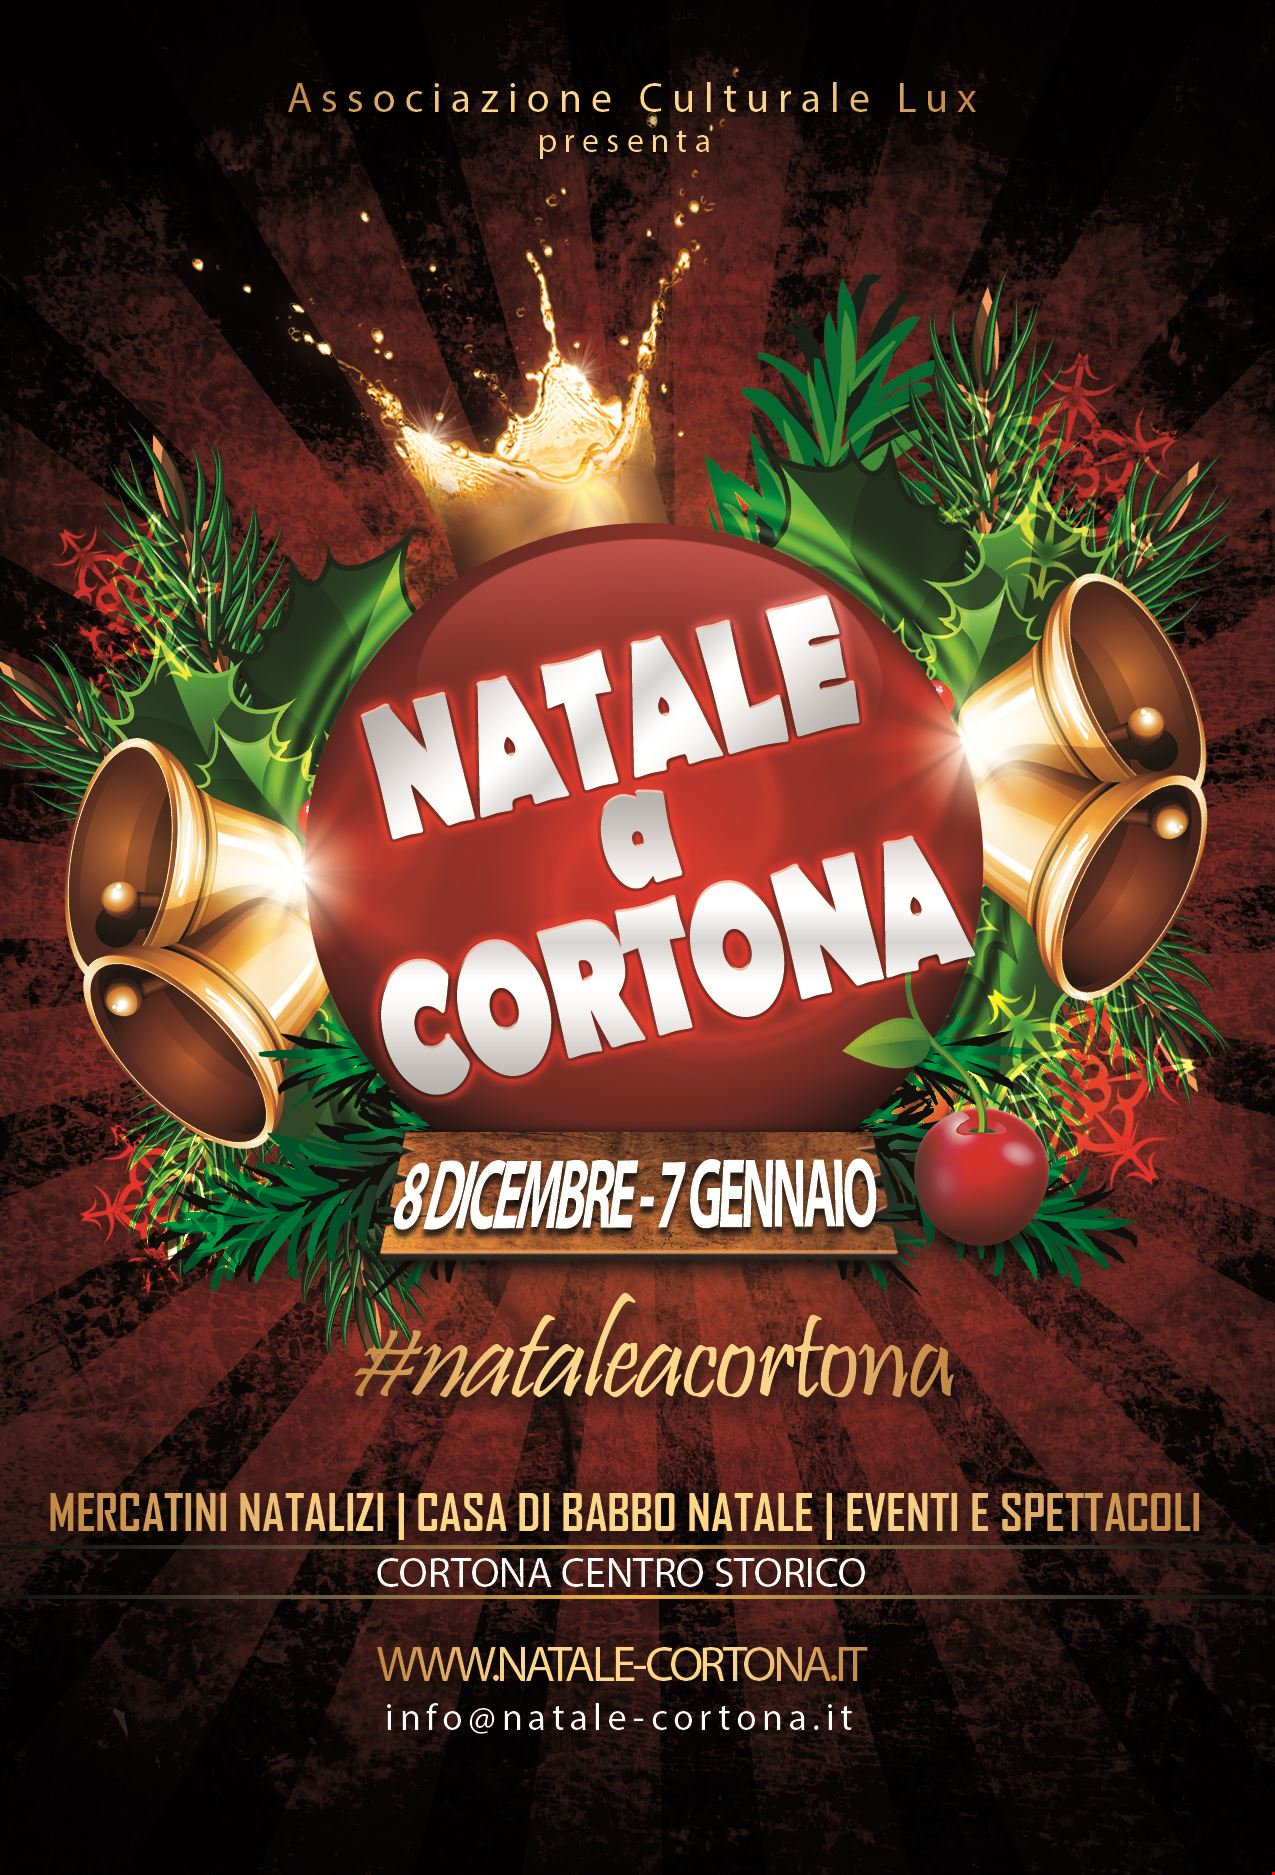 Natale flyer no collaboratori.jpg